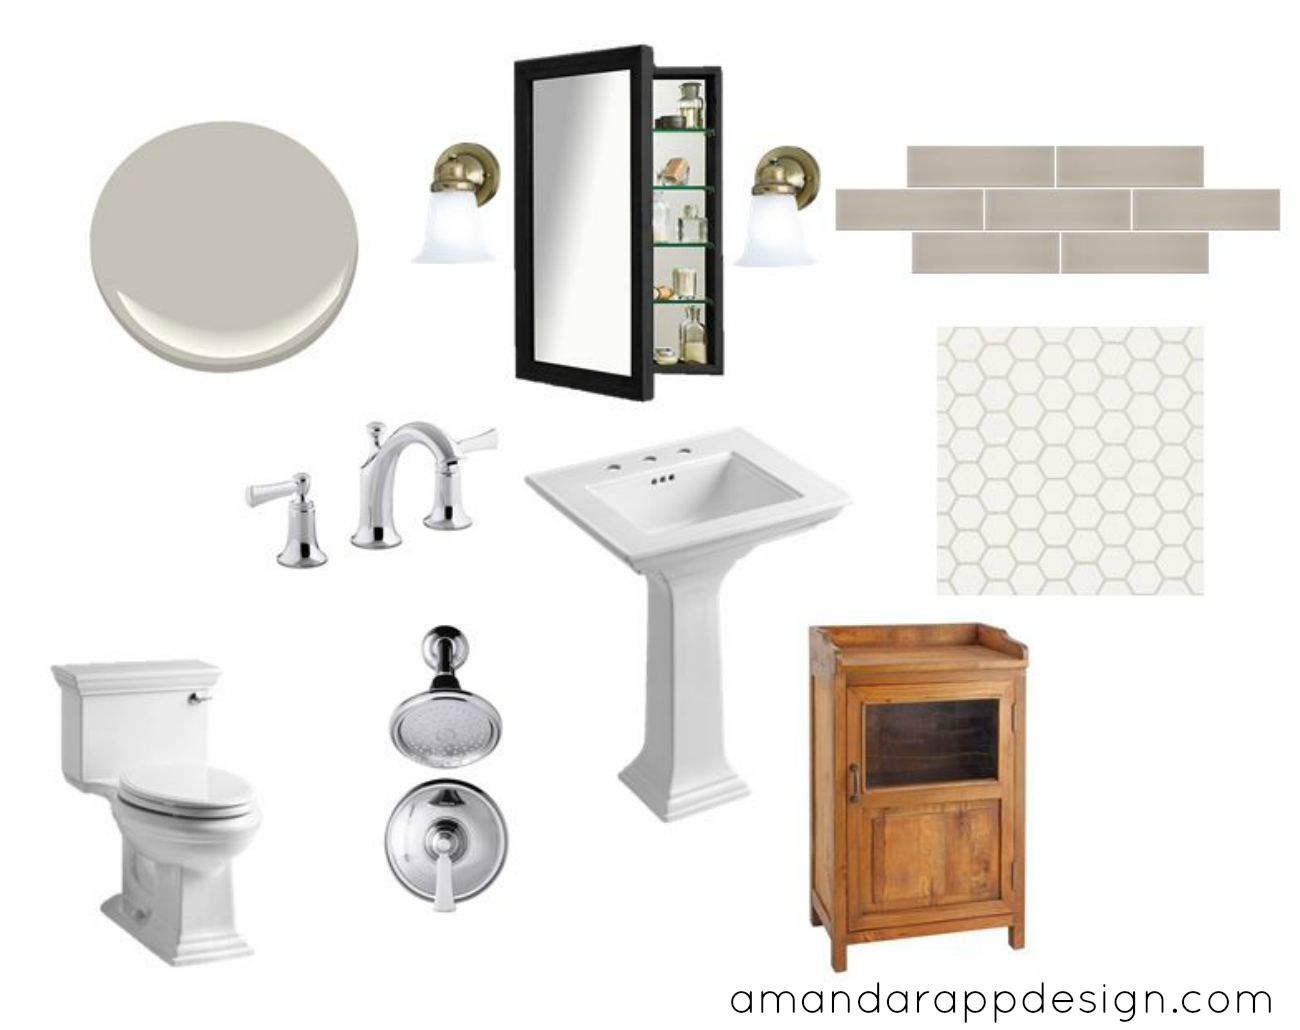 amanda rapp design bathroom design board